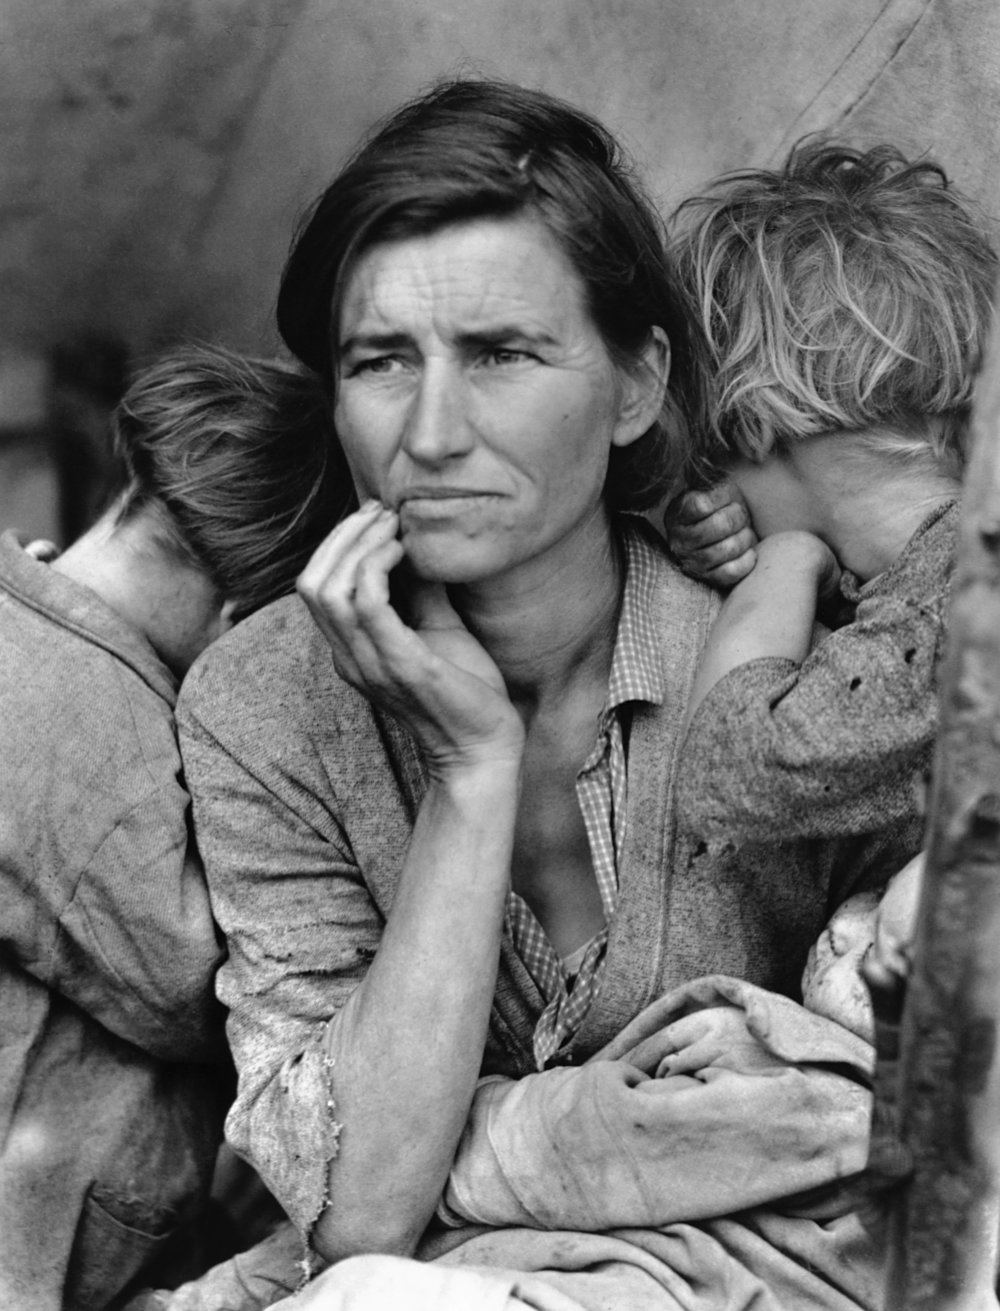 Migrant Mother 1936 Dorothea Lange   Florence Owens Thompson, 32, a poverty-stricken migrant mother with three young children, gazes off into the distance. This photograph, commissioned by the FSA, came to symbolize the Great Depression for many Americans.